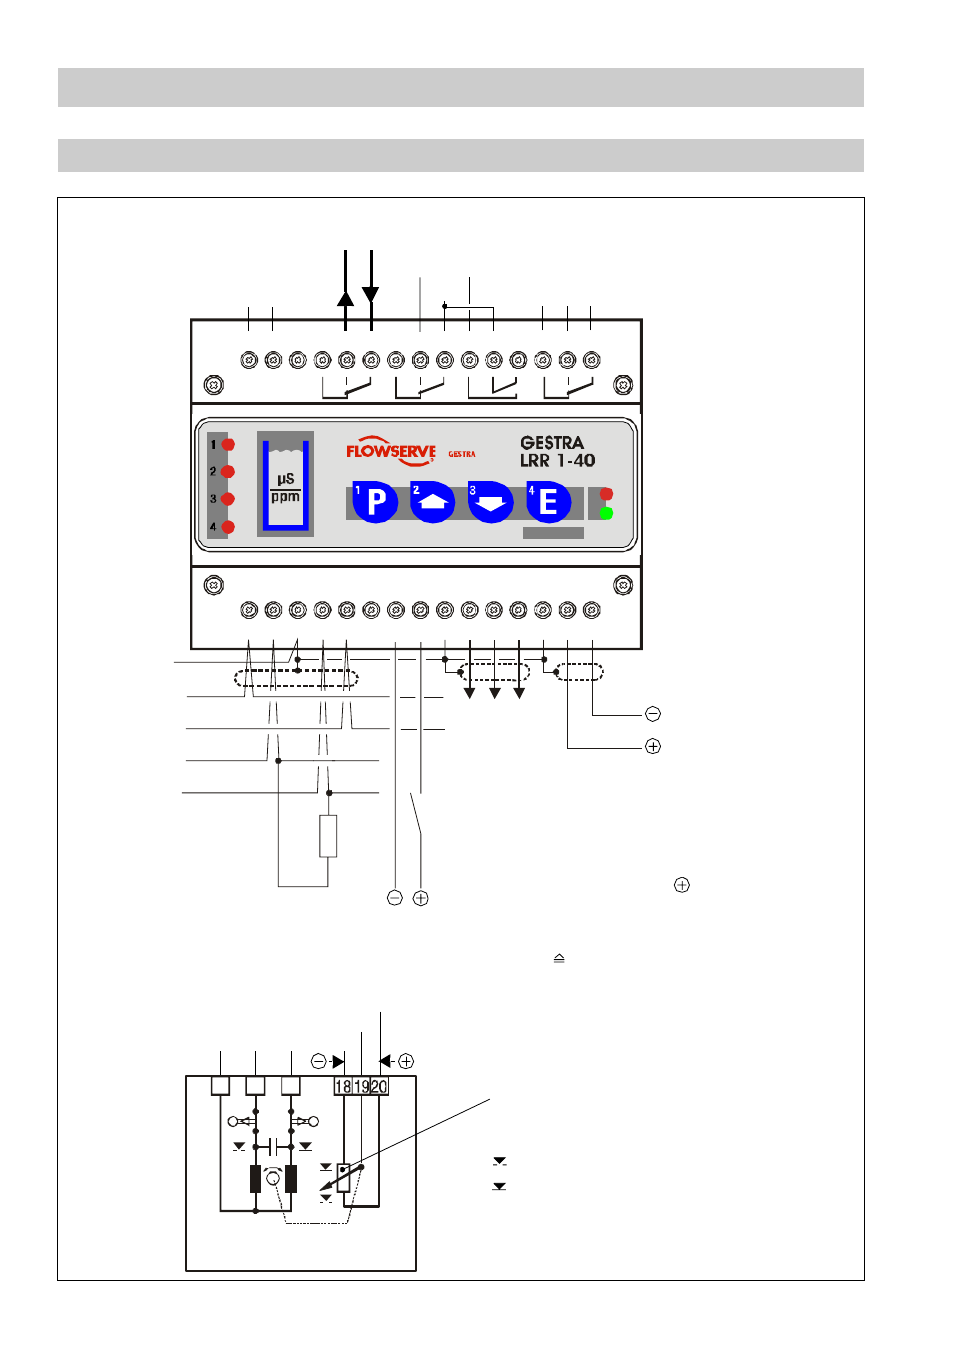 wiring diagram lrr 1 40 wiring fig 4 fig 5 flowserve lrr1 40 rh manualsdir com Light Switch Wiring Diagram HVAC Wiring Diagrams